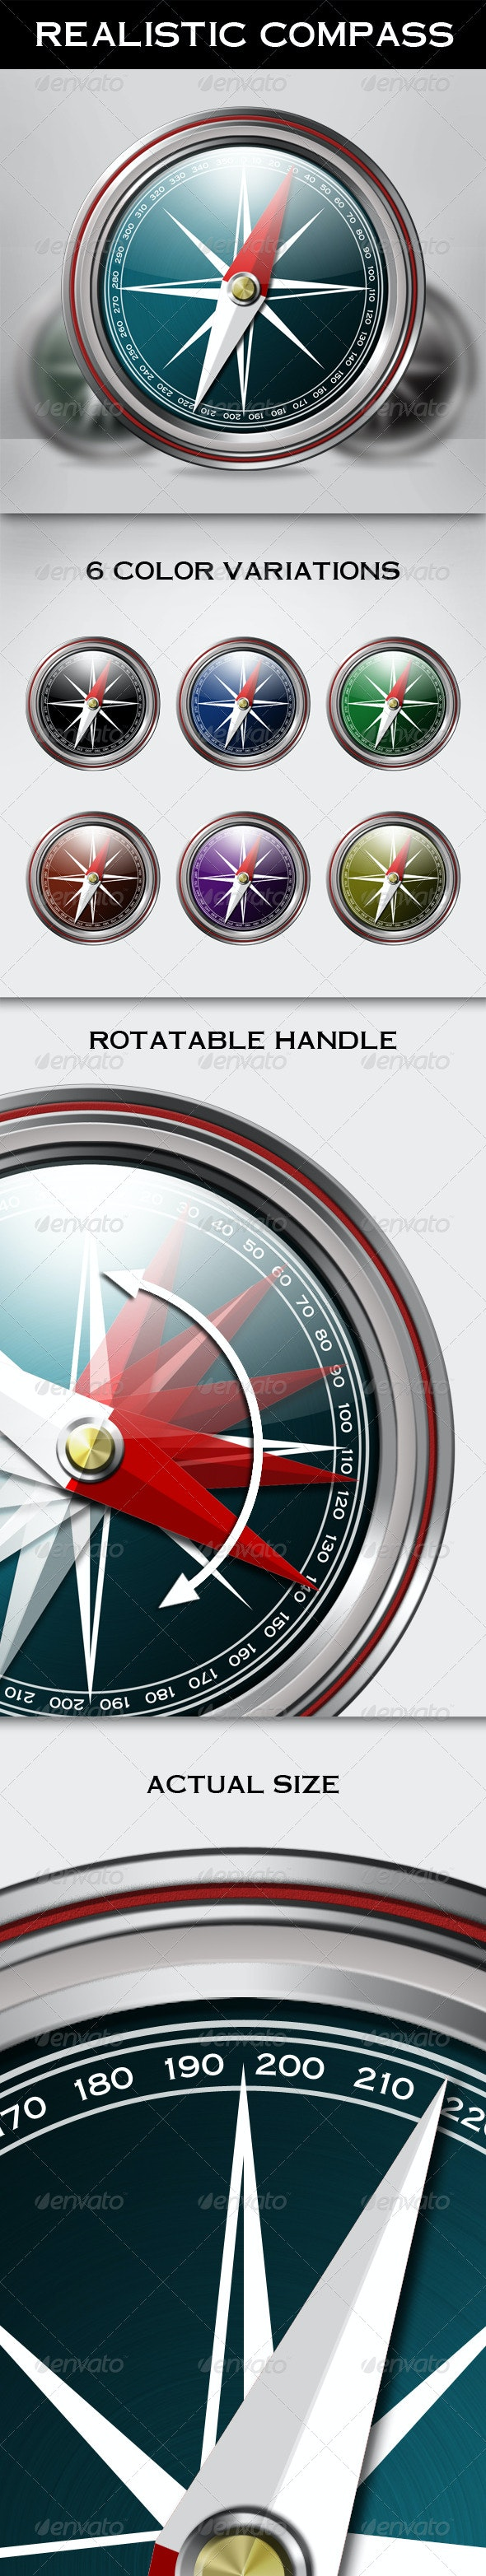 Metallic Compass with Rotatable Handle - Miscellaneous Product Mock-Ups